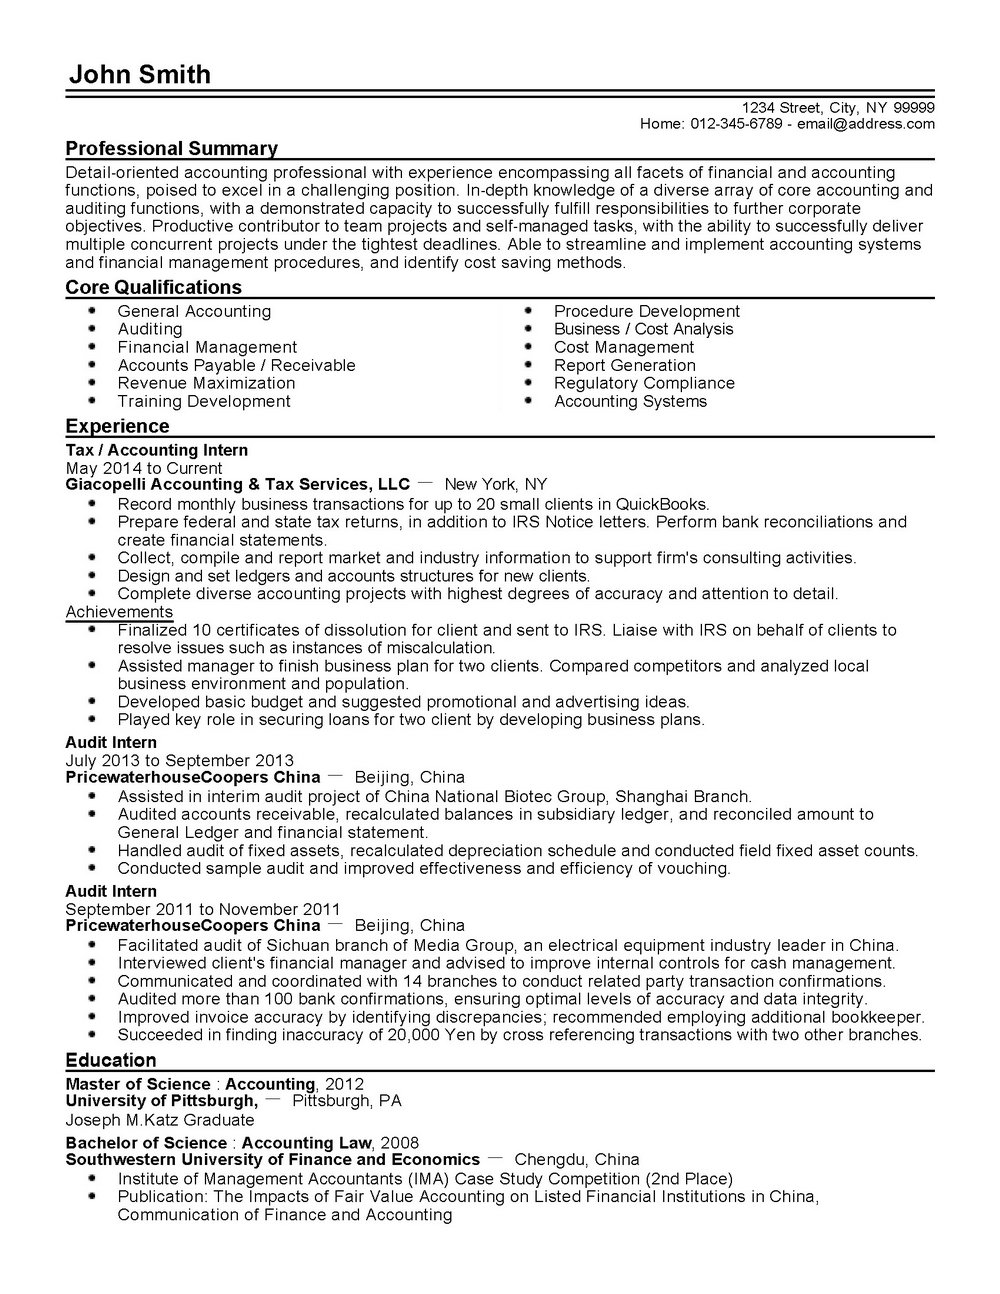 Professional Accounting Resume Templates